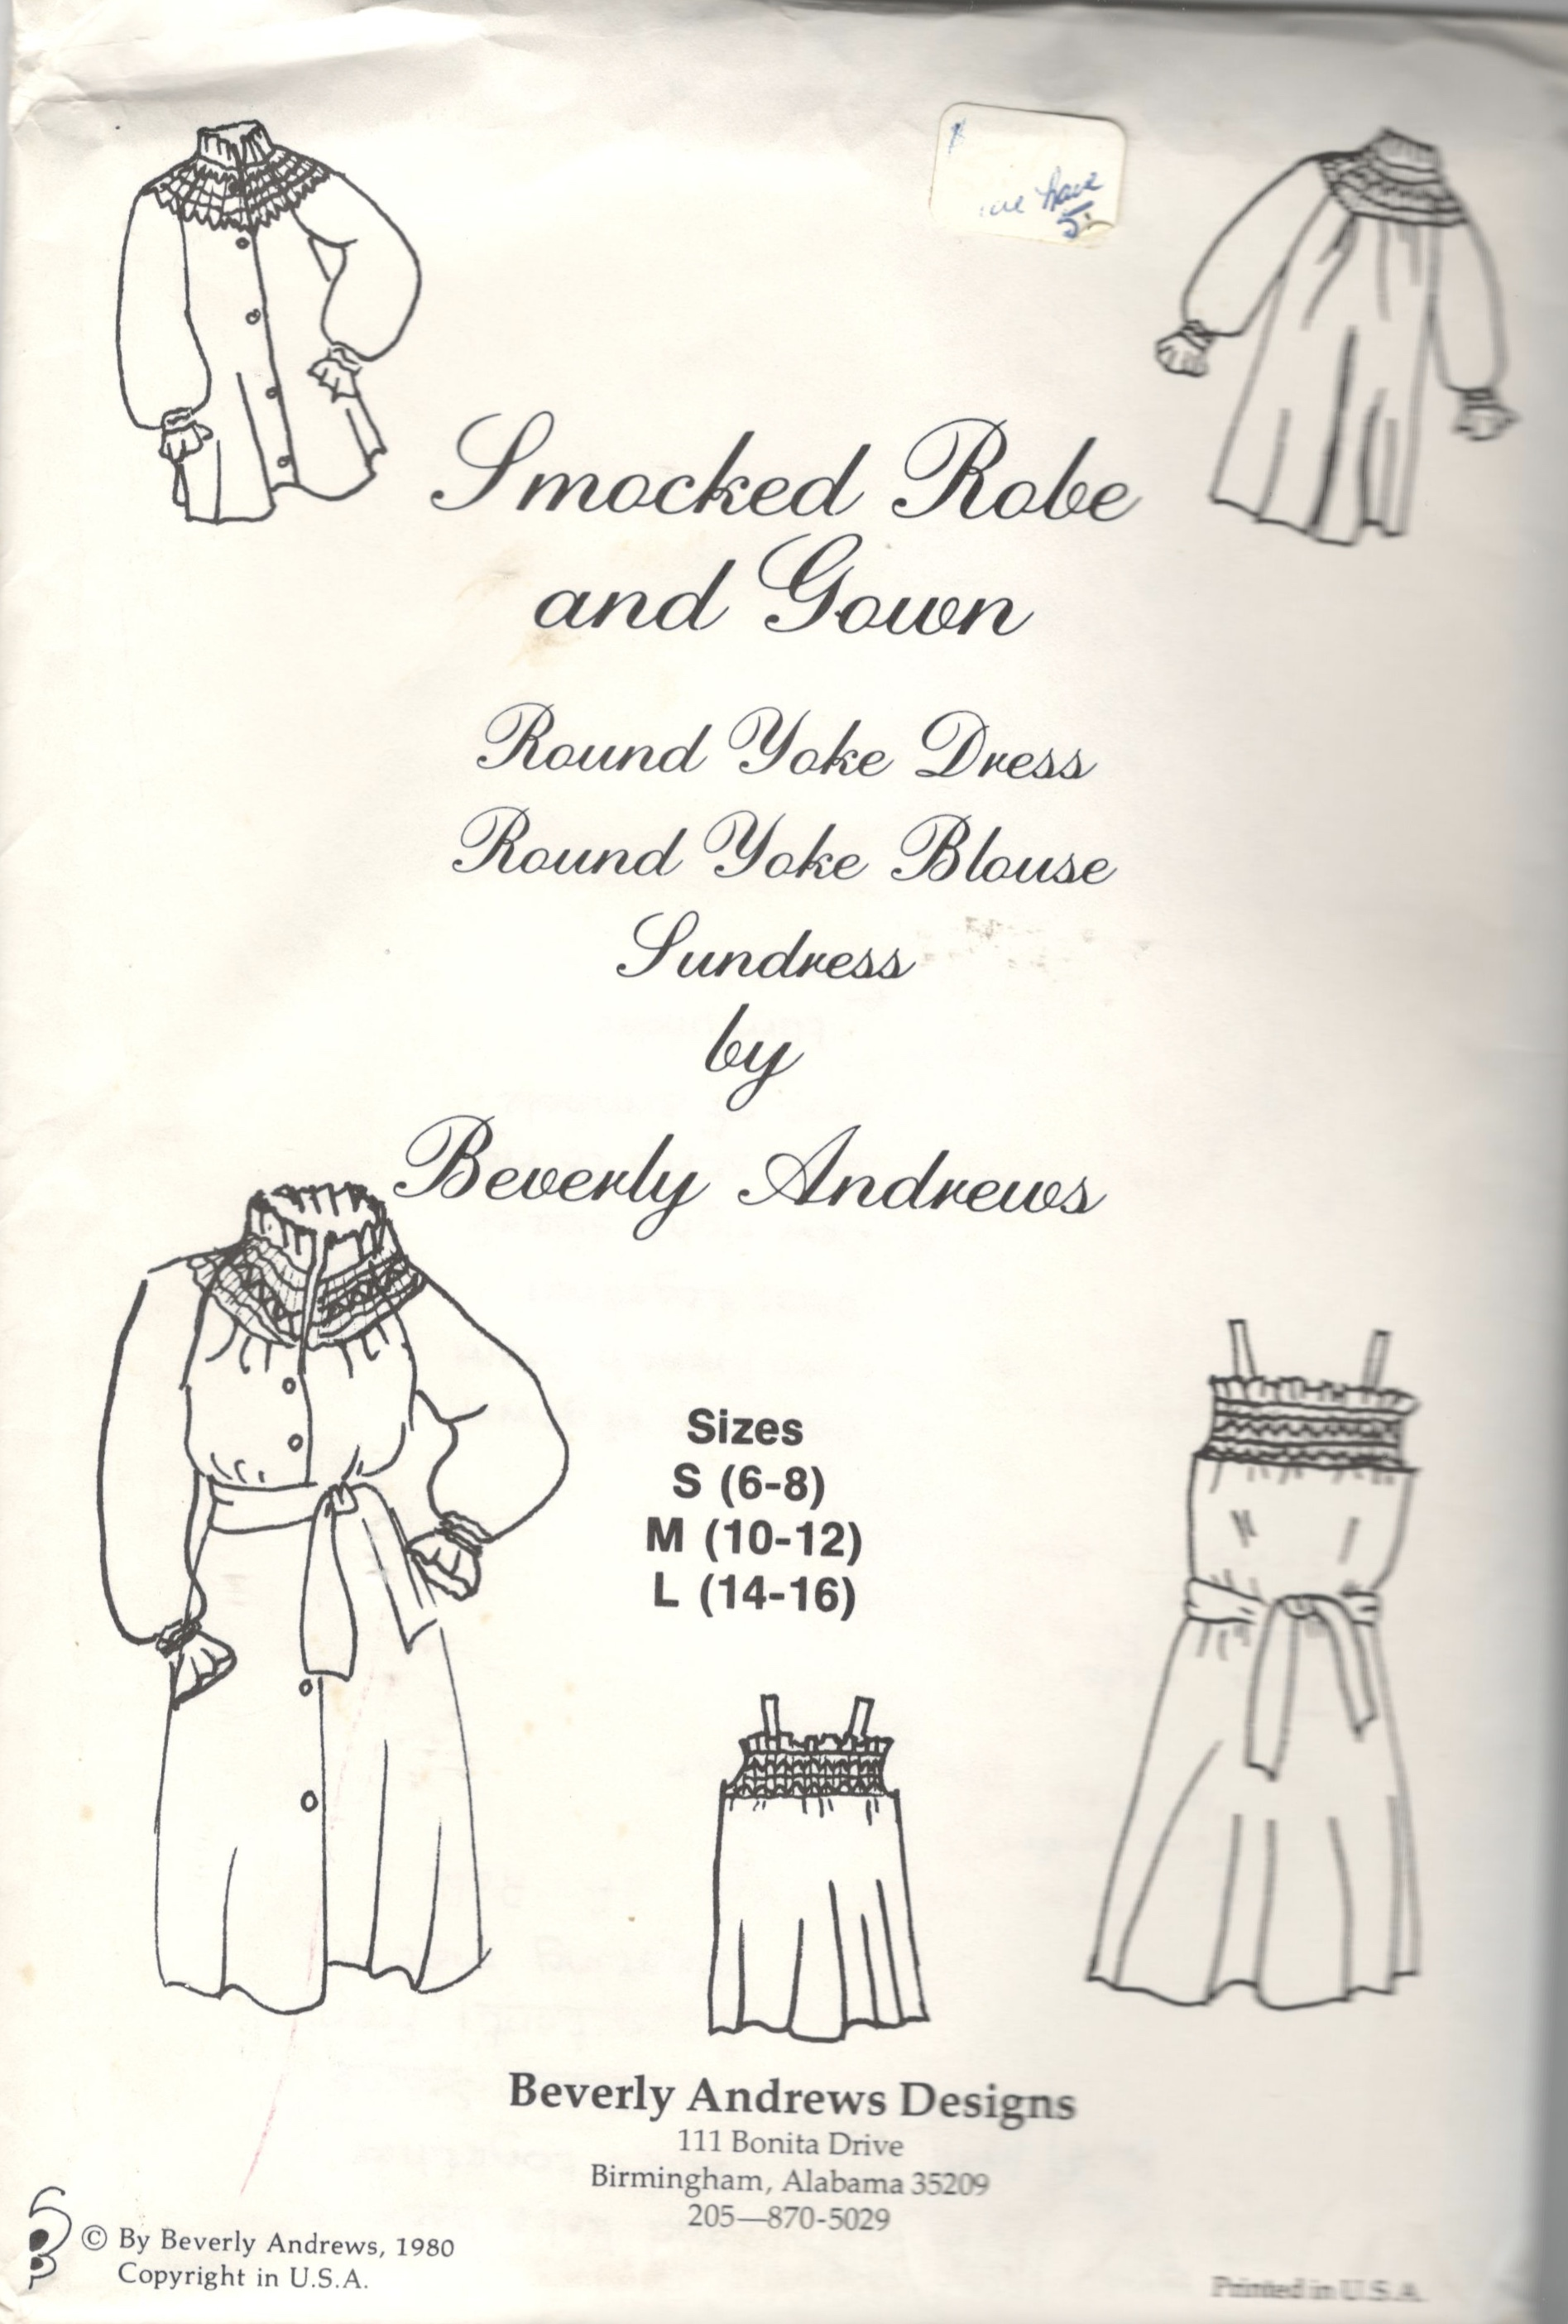 Beverly Andrews Designs Smocked Robe and Gown